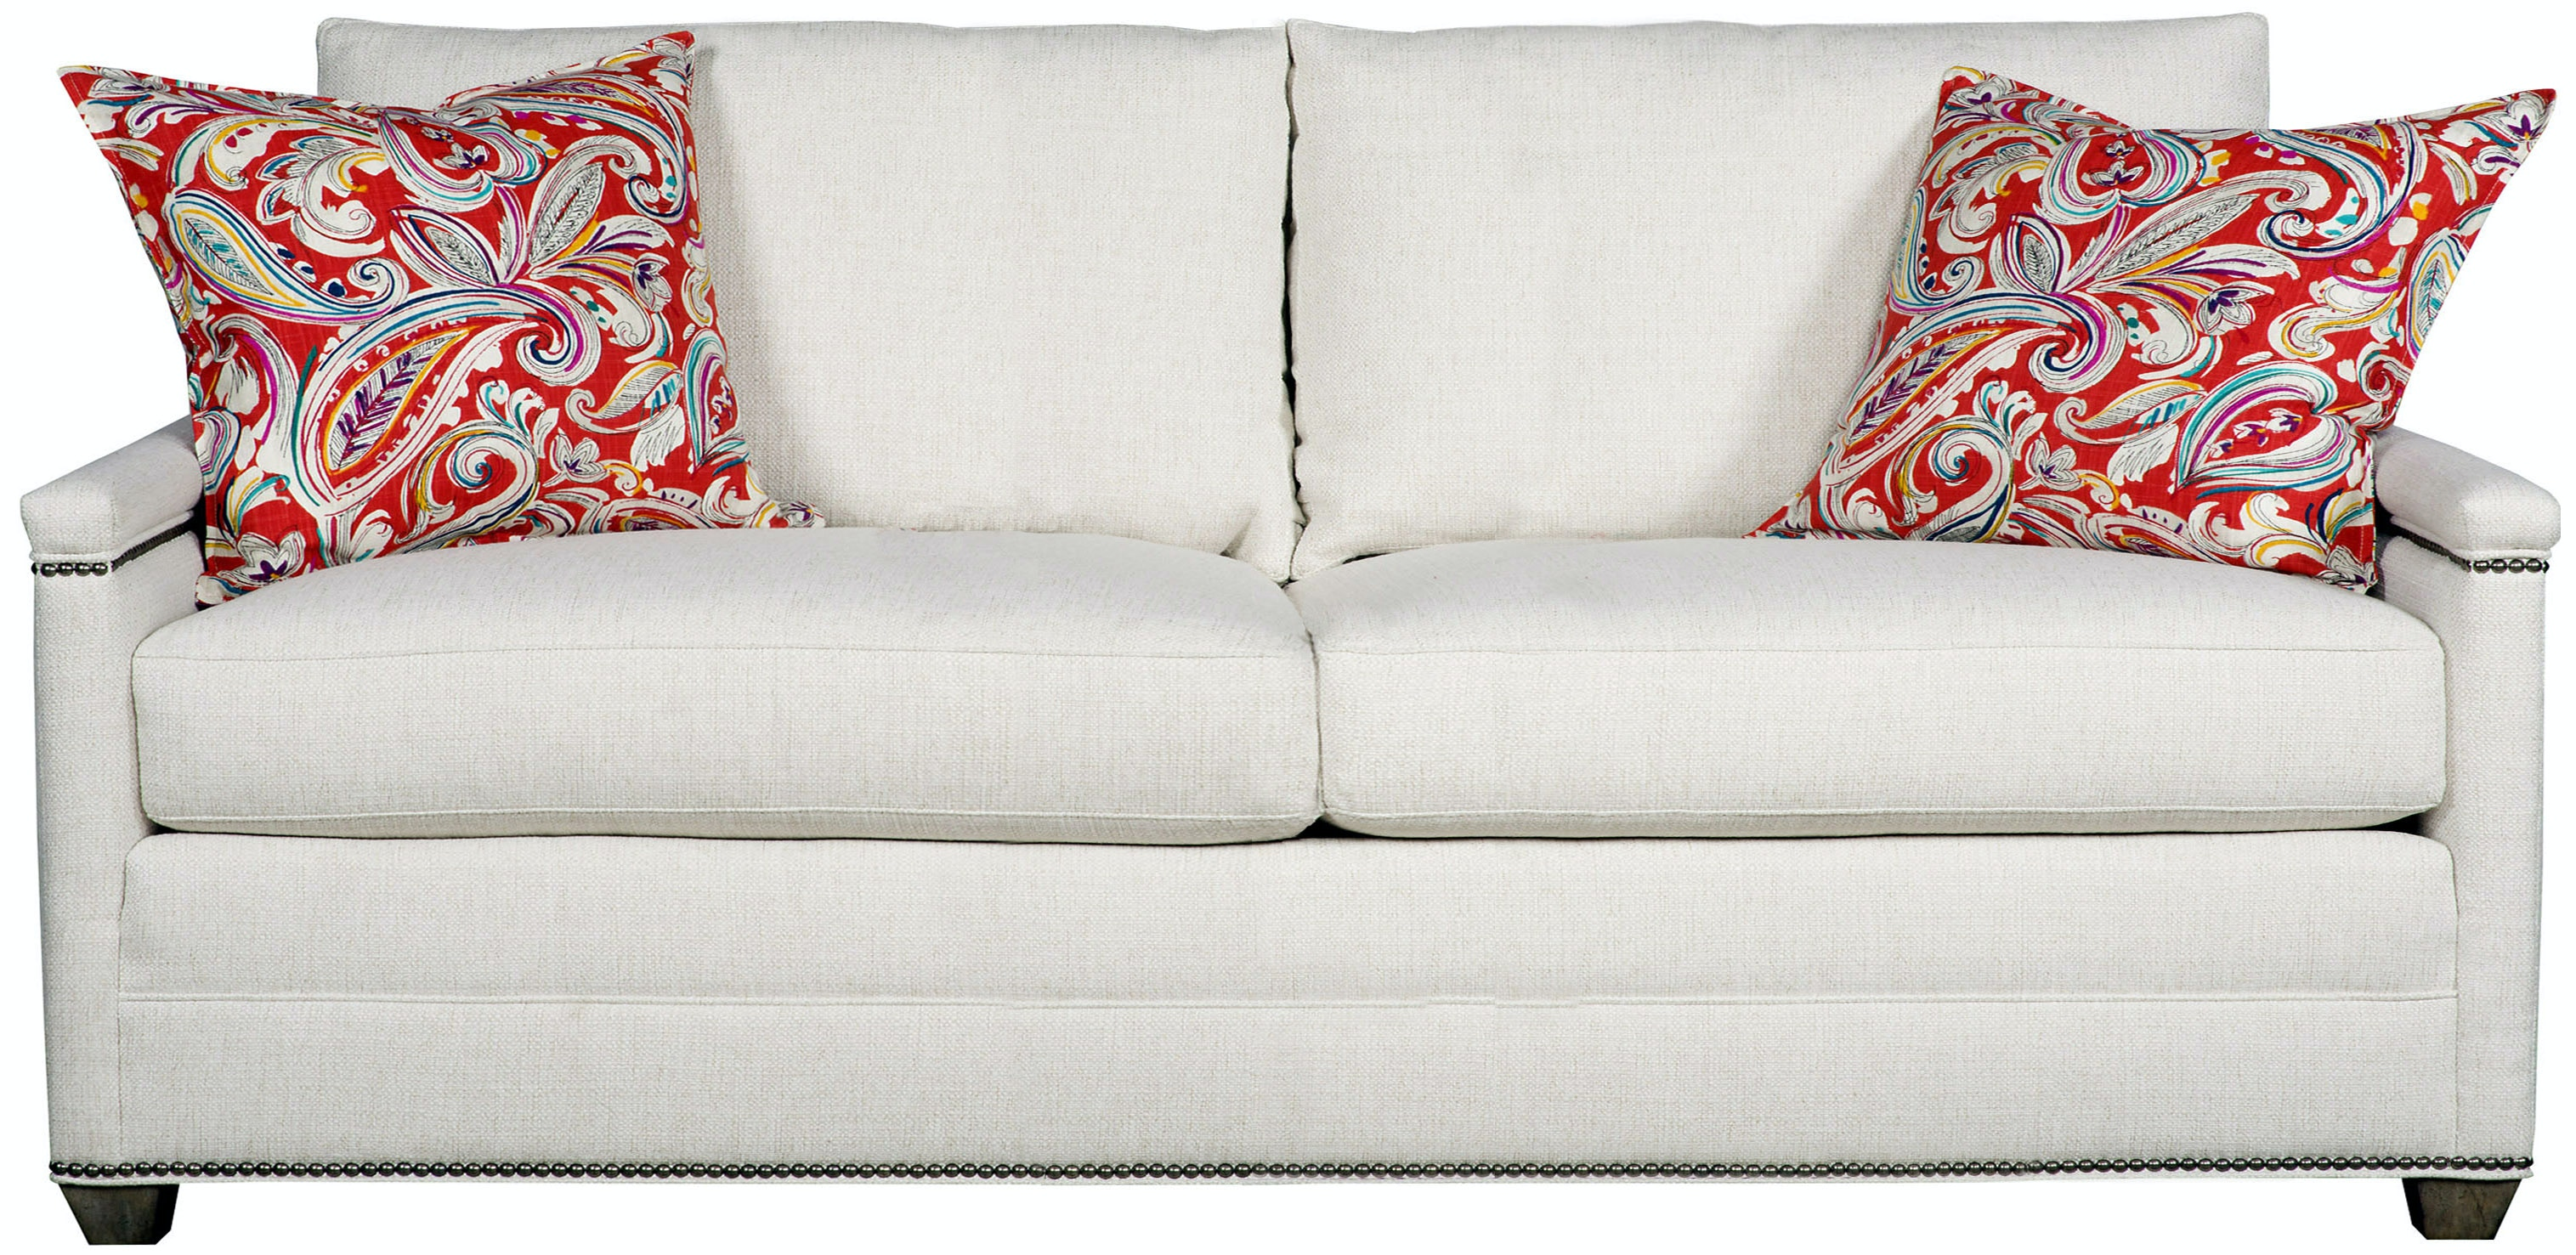 Vanguard Furniture Connelly Springs Mid Sofa 656 MS